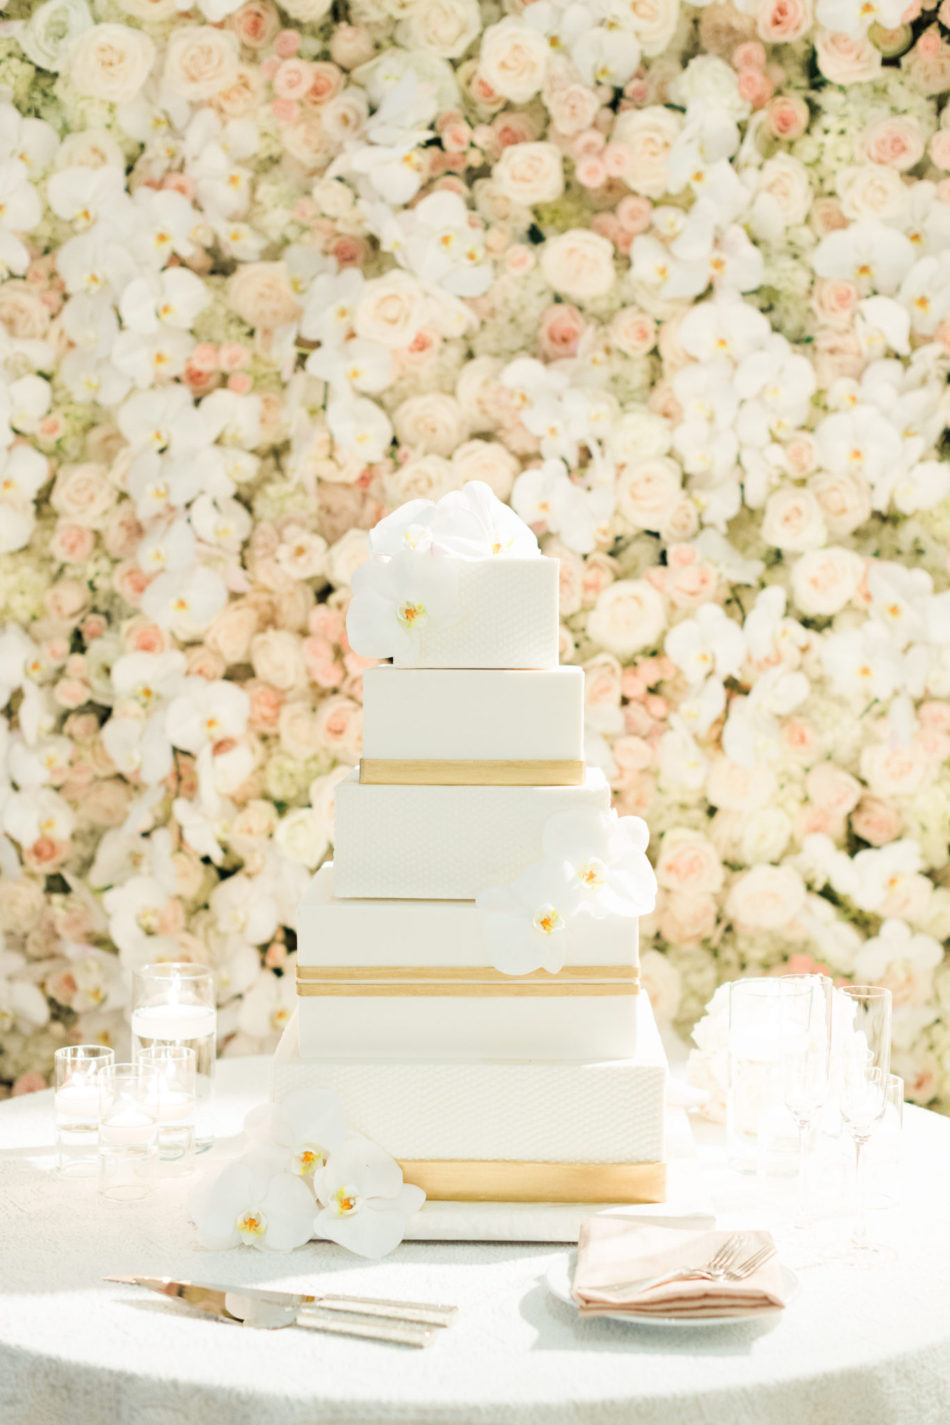 floral wall, white and gold wedding cake, romantic all-white wedding, floral design, florist, wedding florist, wedding flowers, orange county weddings, orange county wedding florist, orange county florist, orange county floral design, flowers by cina